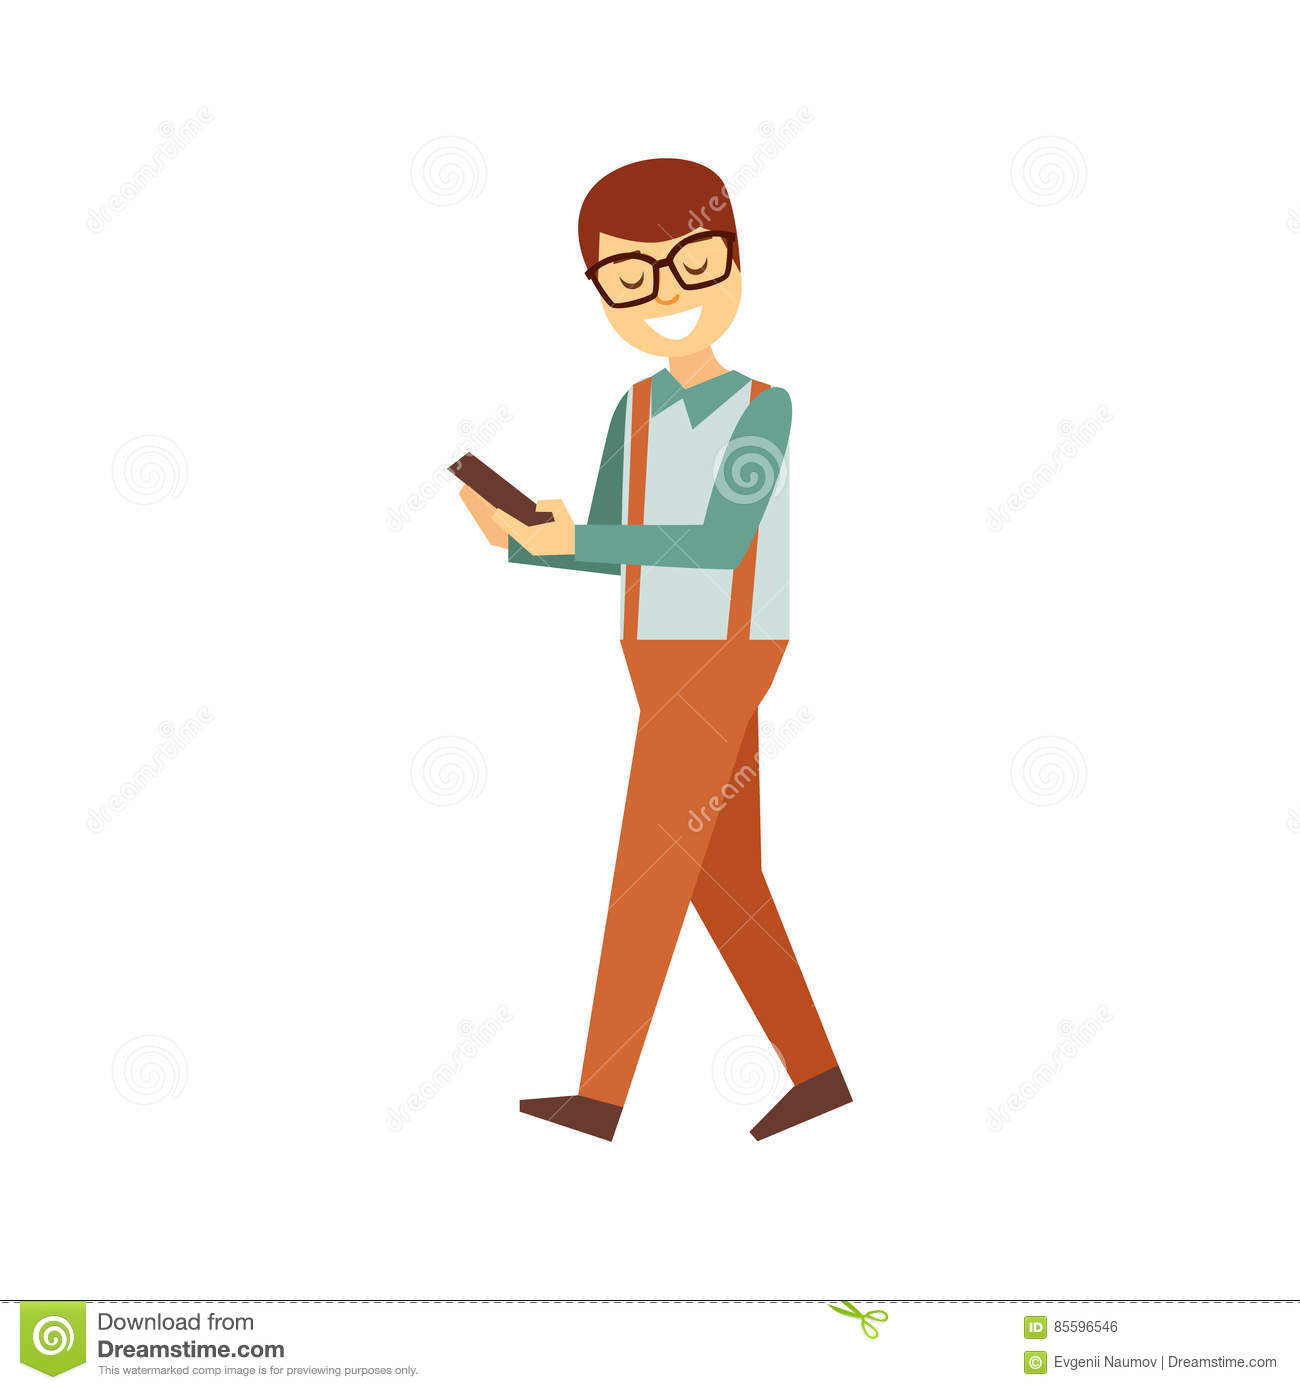 Man In Glasses Walking Looking At Smartphone Screen, Person Being Online All The Time Obsessed With Gadget